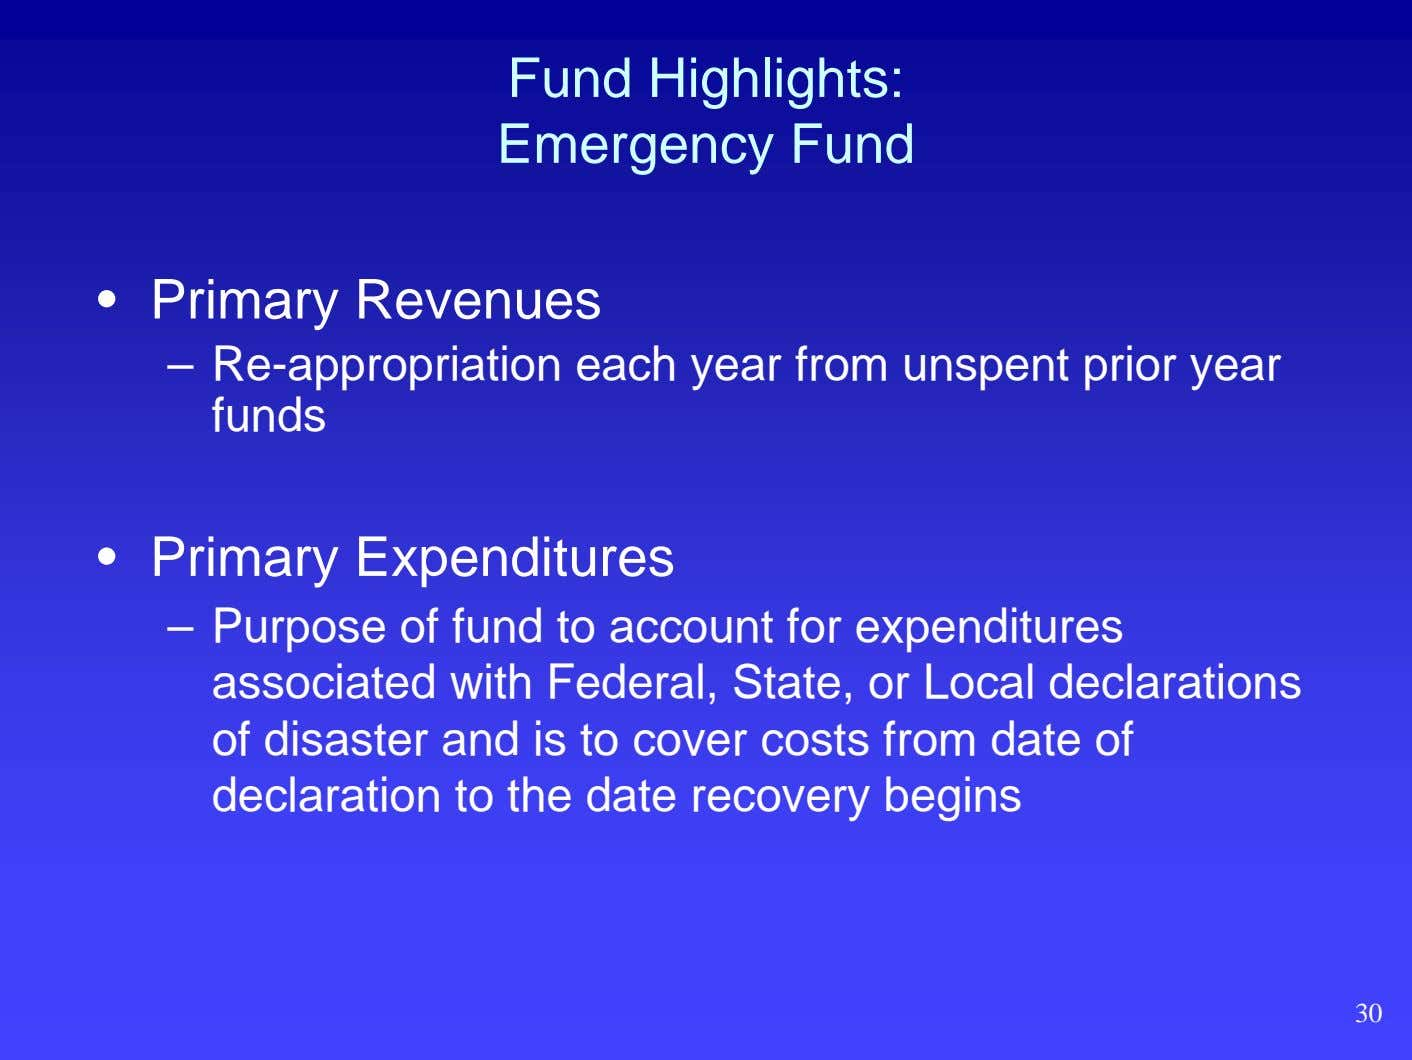 Fund Highlights: Emergency Fund • Primary Revenues – Re-appropriation each year from unspent prior year